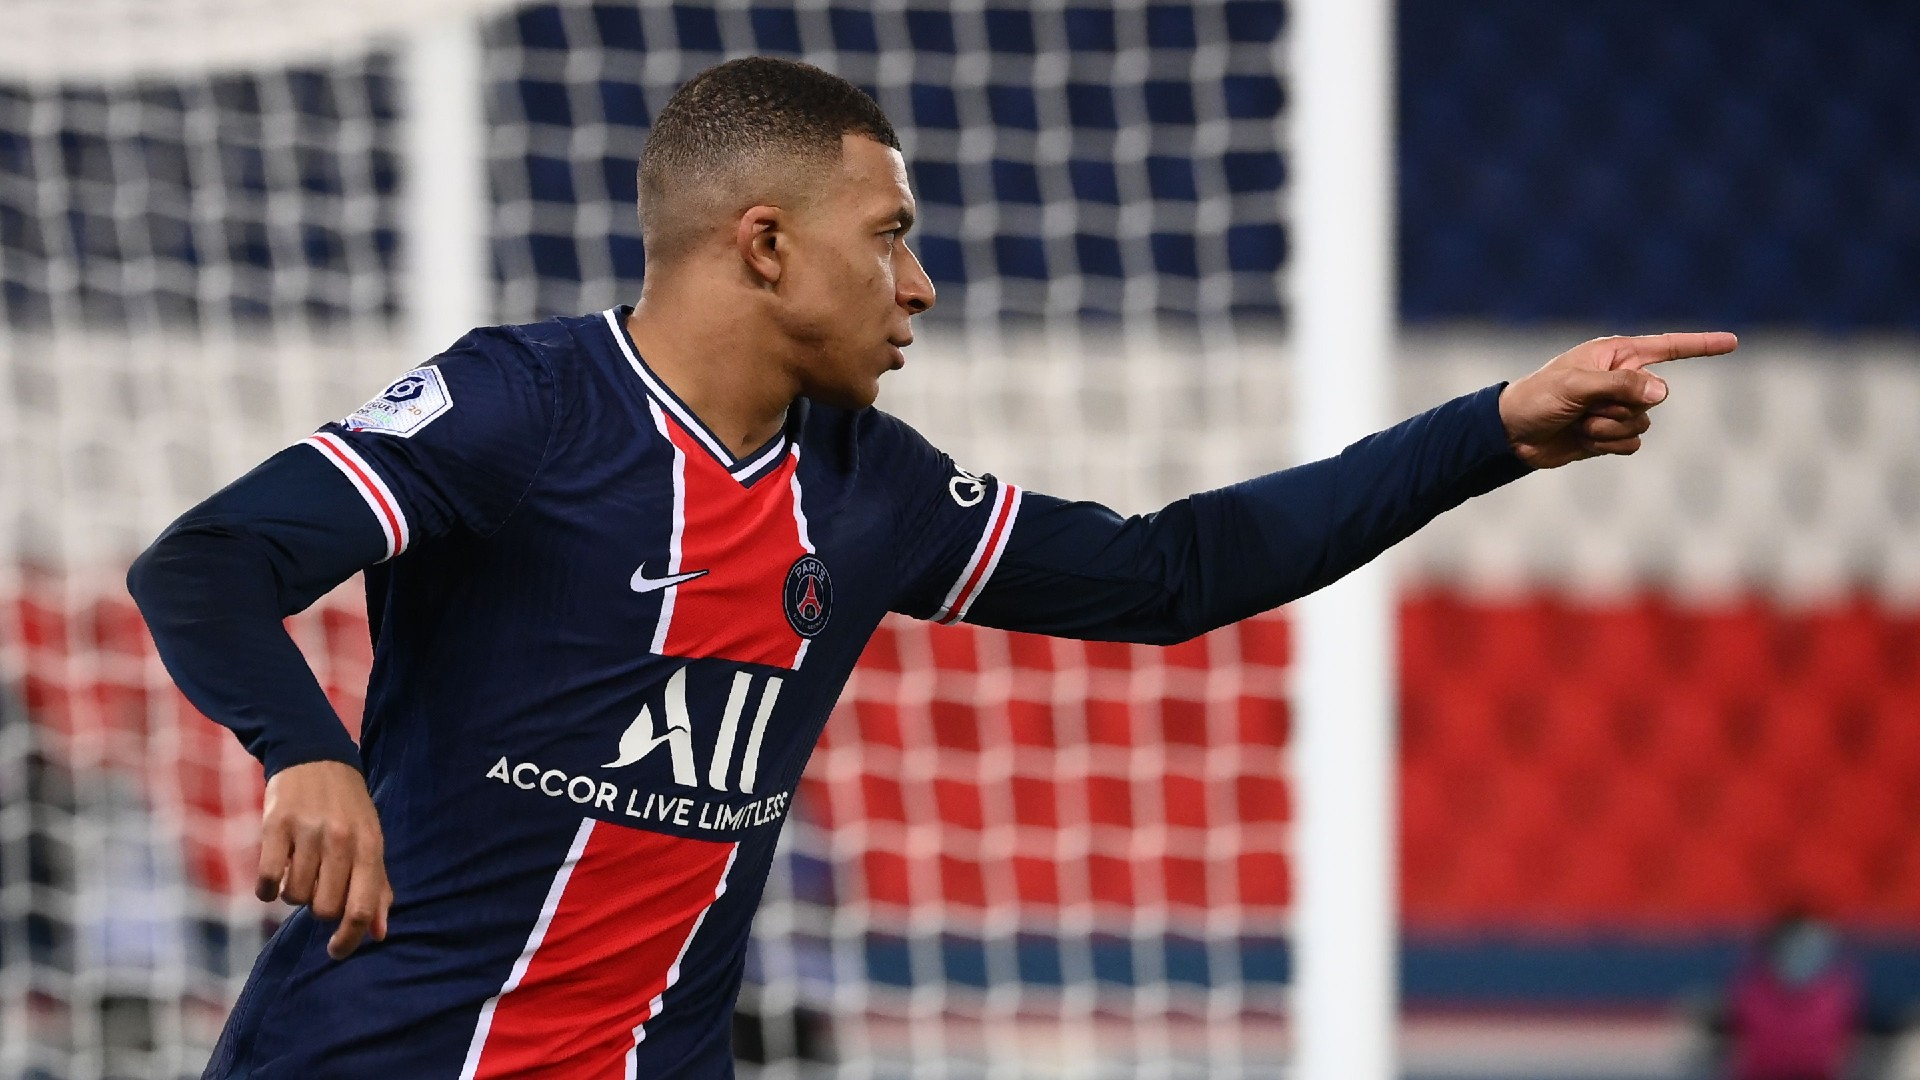 'I want to stay at PSG' - Neymar commits future to Ligue 1 giants and urges Mbappe to remain as well